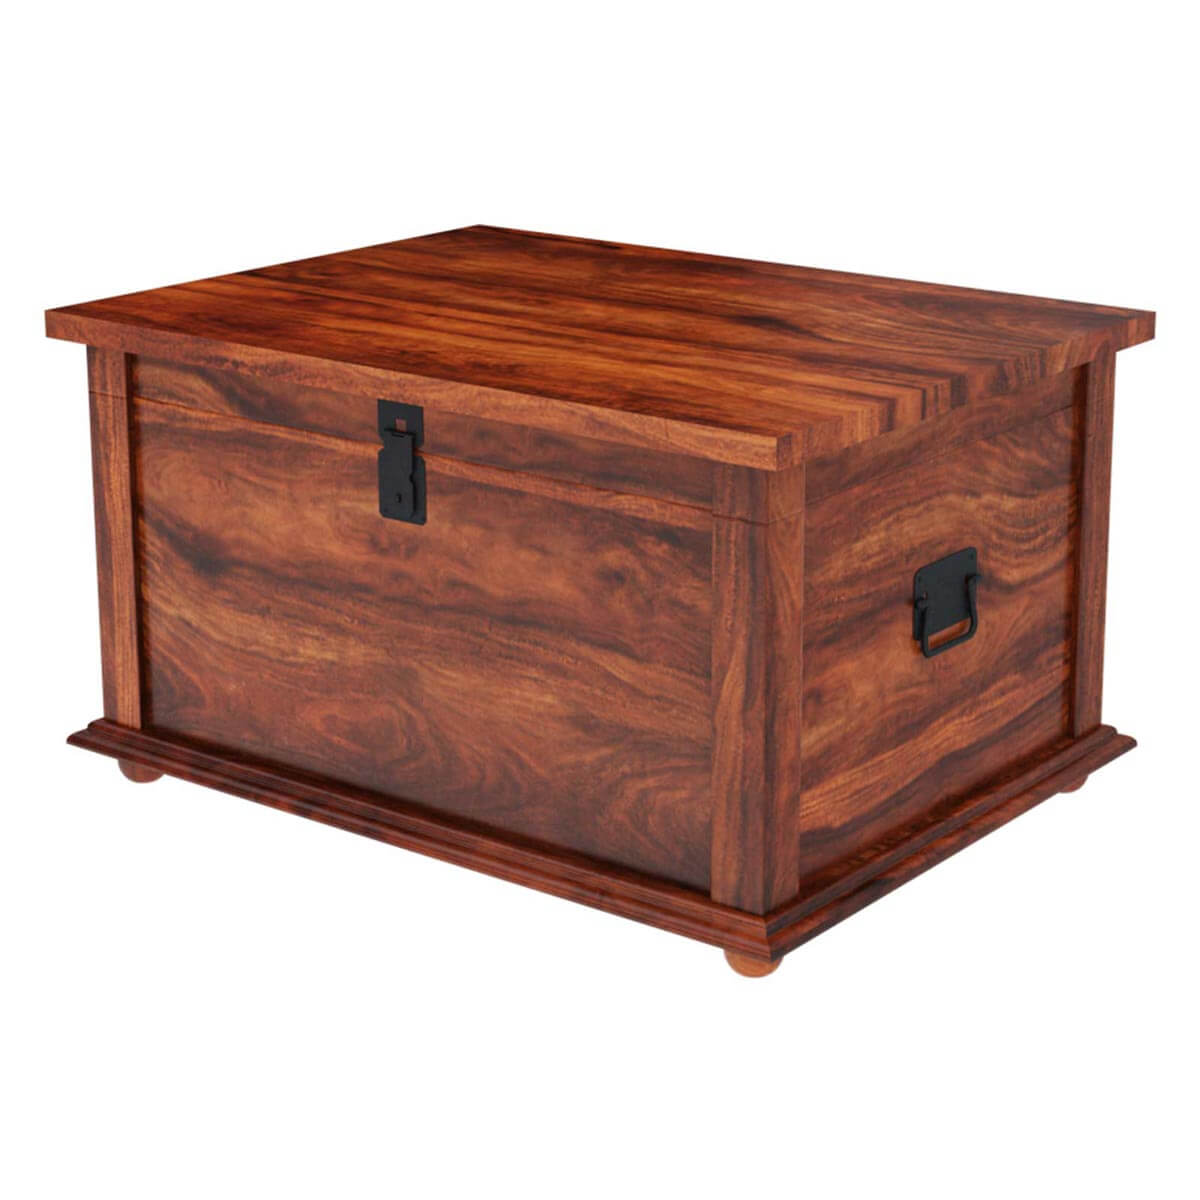 Rustic primitive solid wood storage trunk coffee table new Trunk coffee tables